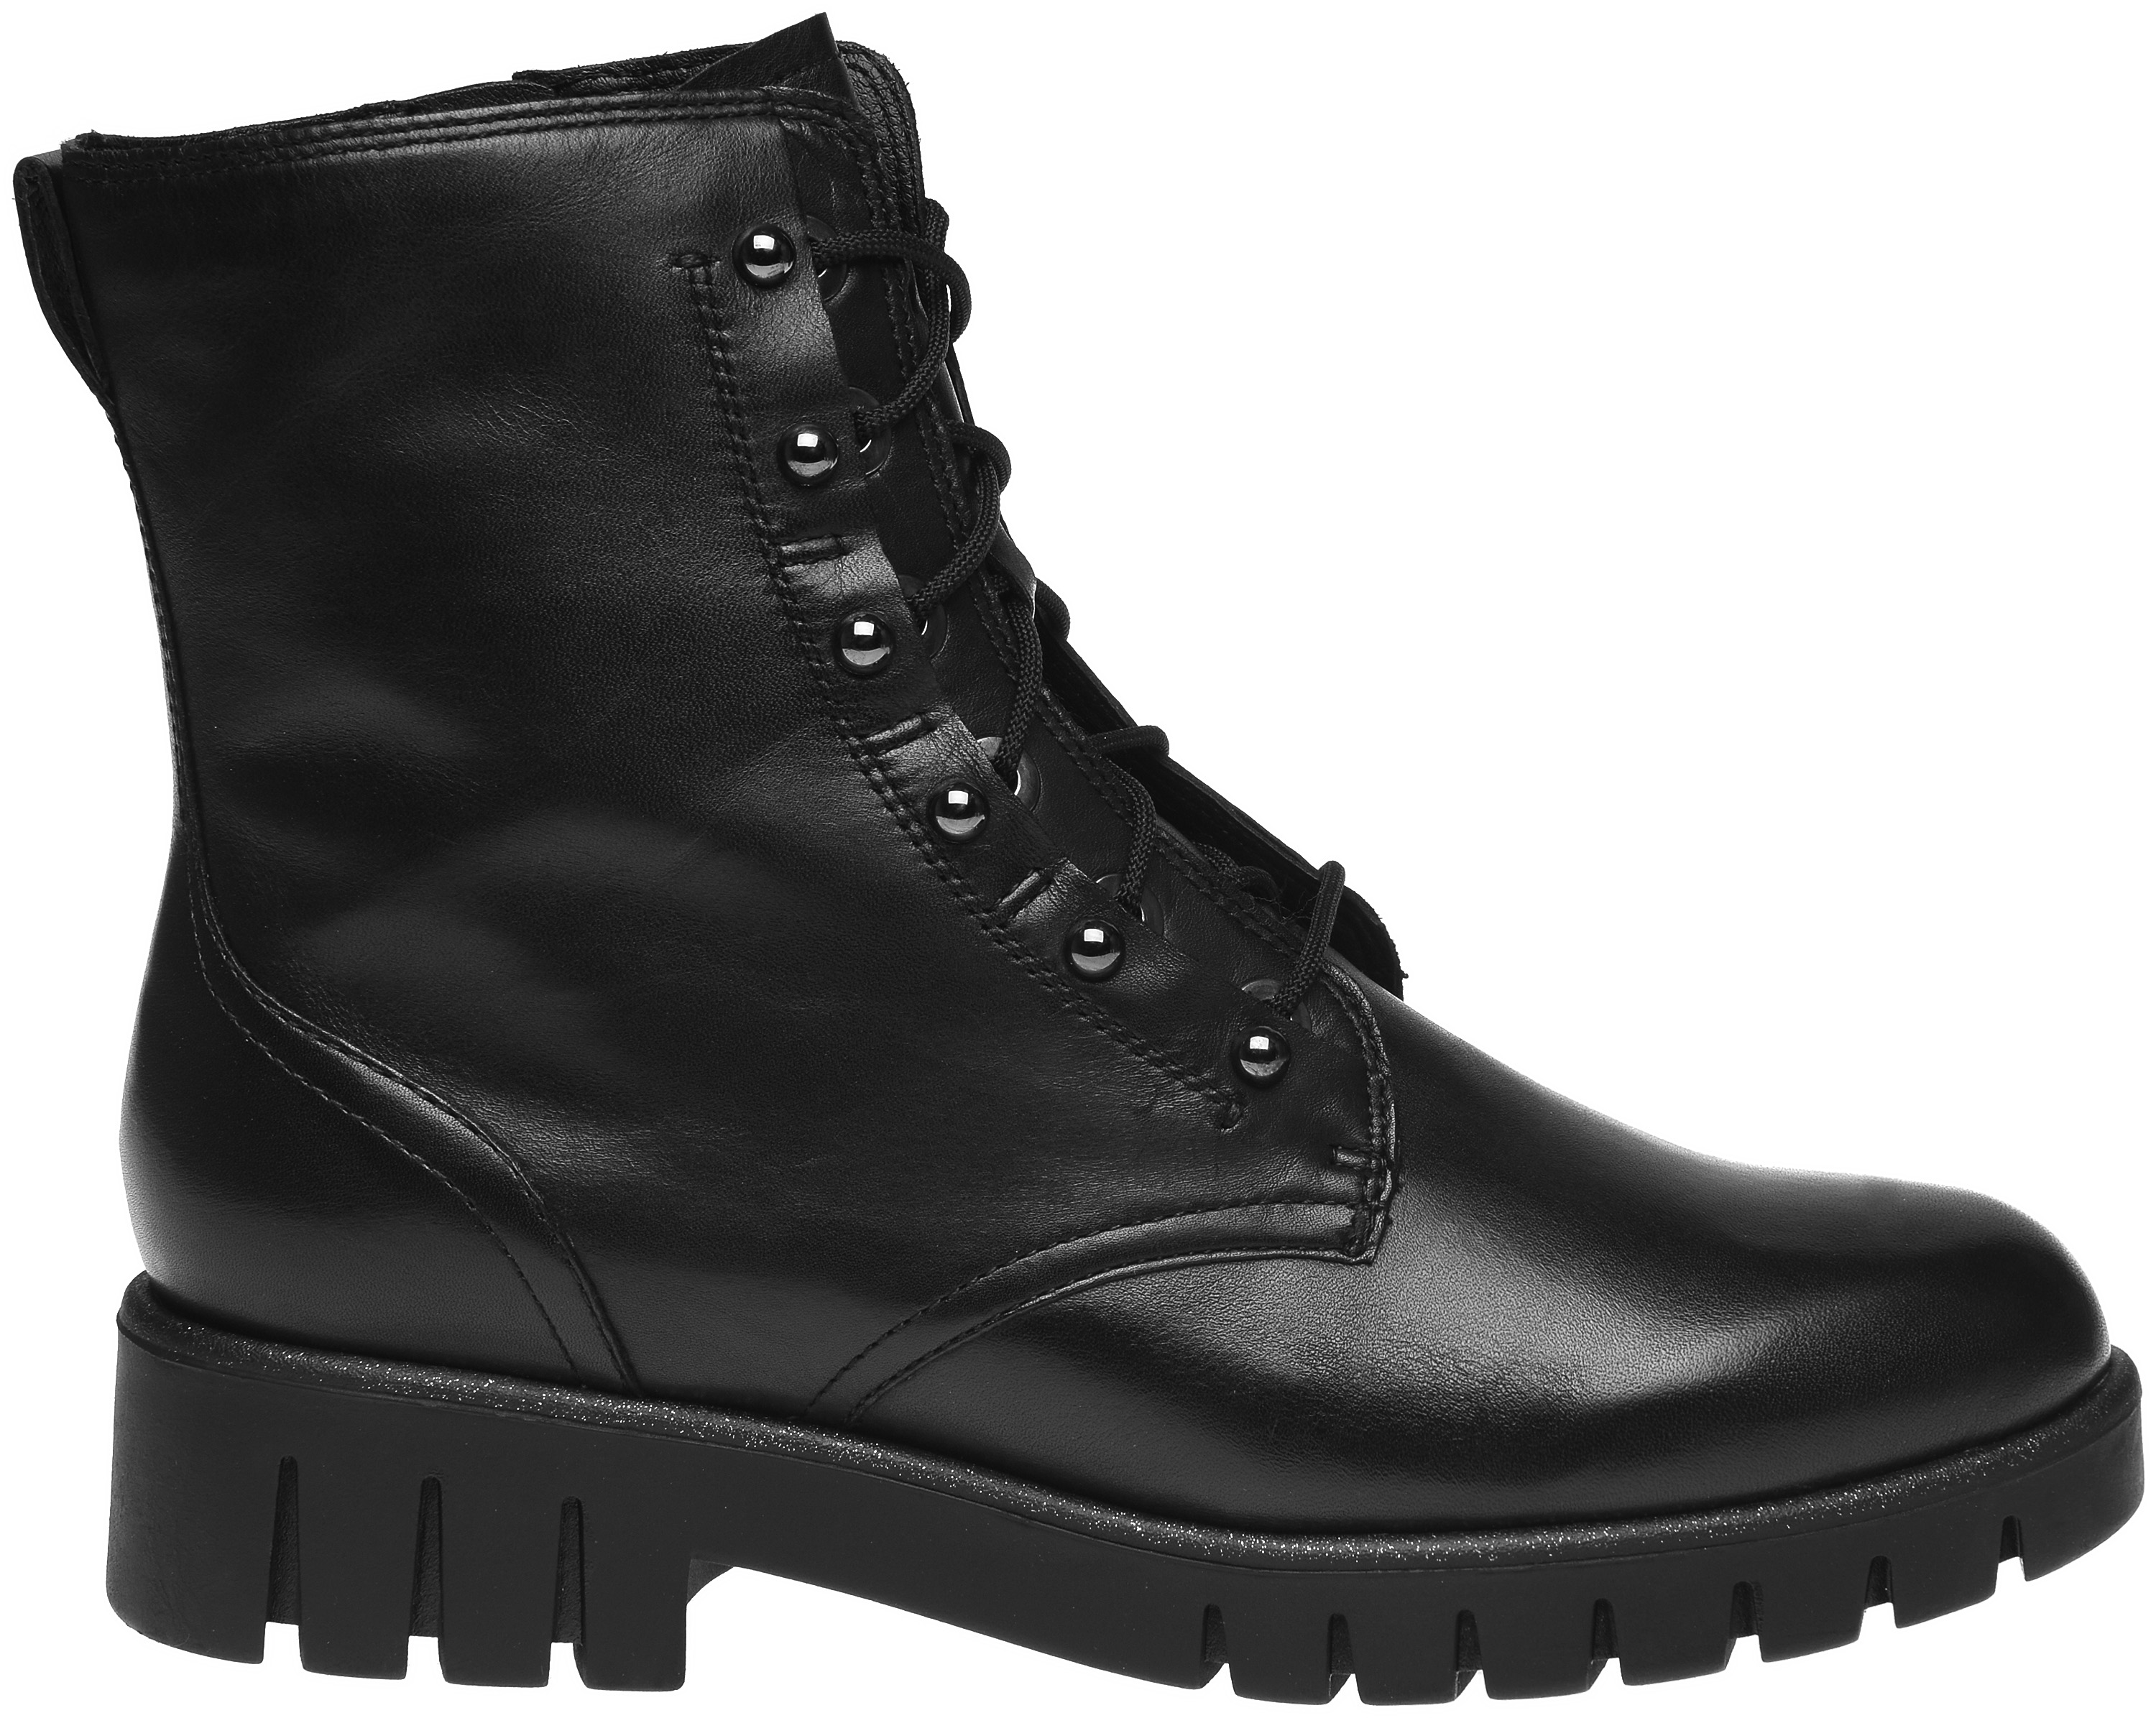 Ботинки Tamaris 25213-23-001 BLACK 39 Черные (4059253695637)